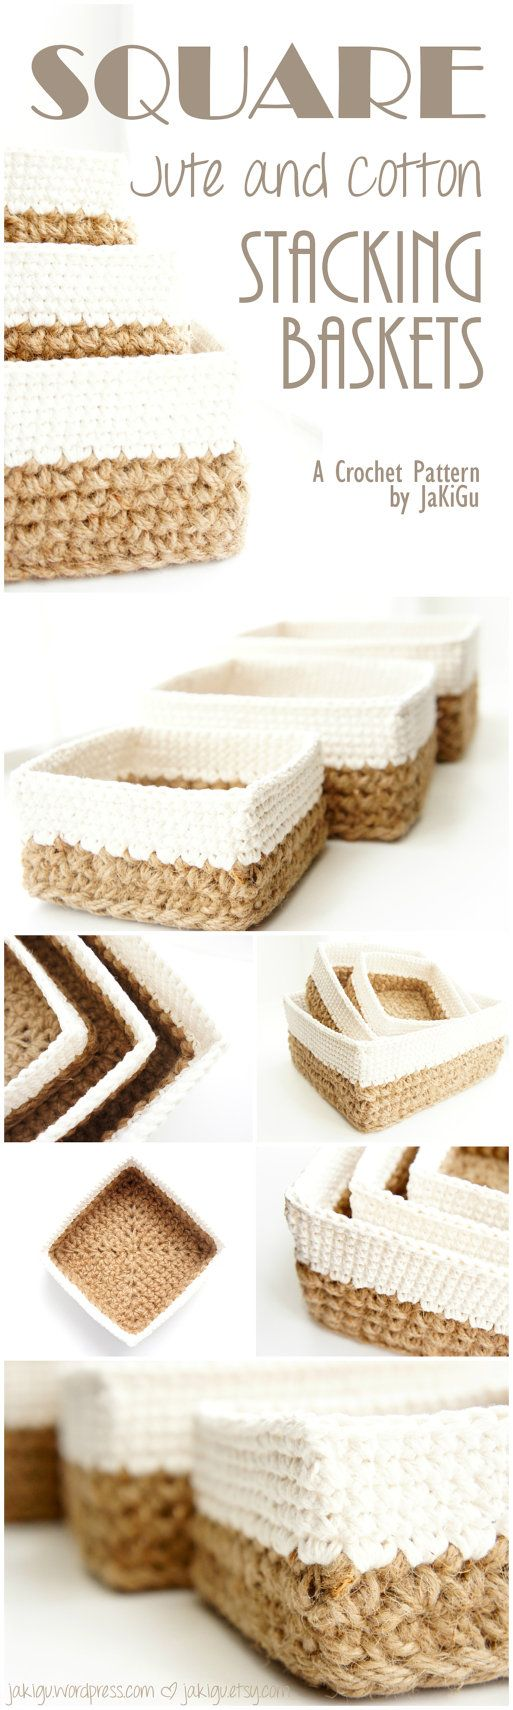 Crochet Pattern Bundle - Discount - Round, Square and Lace Jute and ...